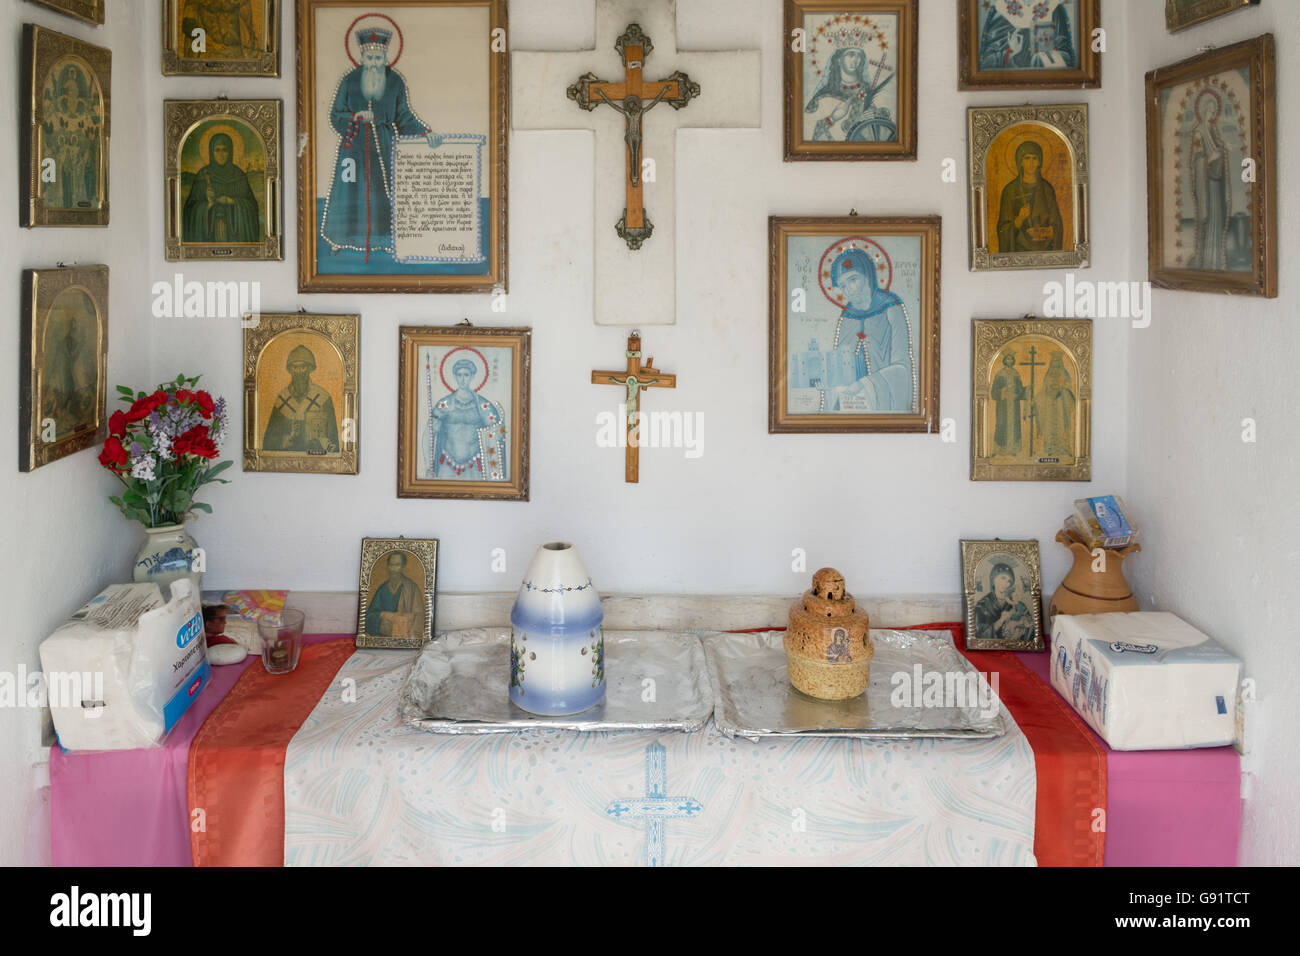 interior of Greek roadside shrine near Loggos, Paxos, Greece - the small shrines are usually to commemorate those - Stock Image